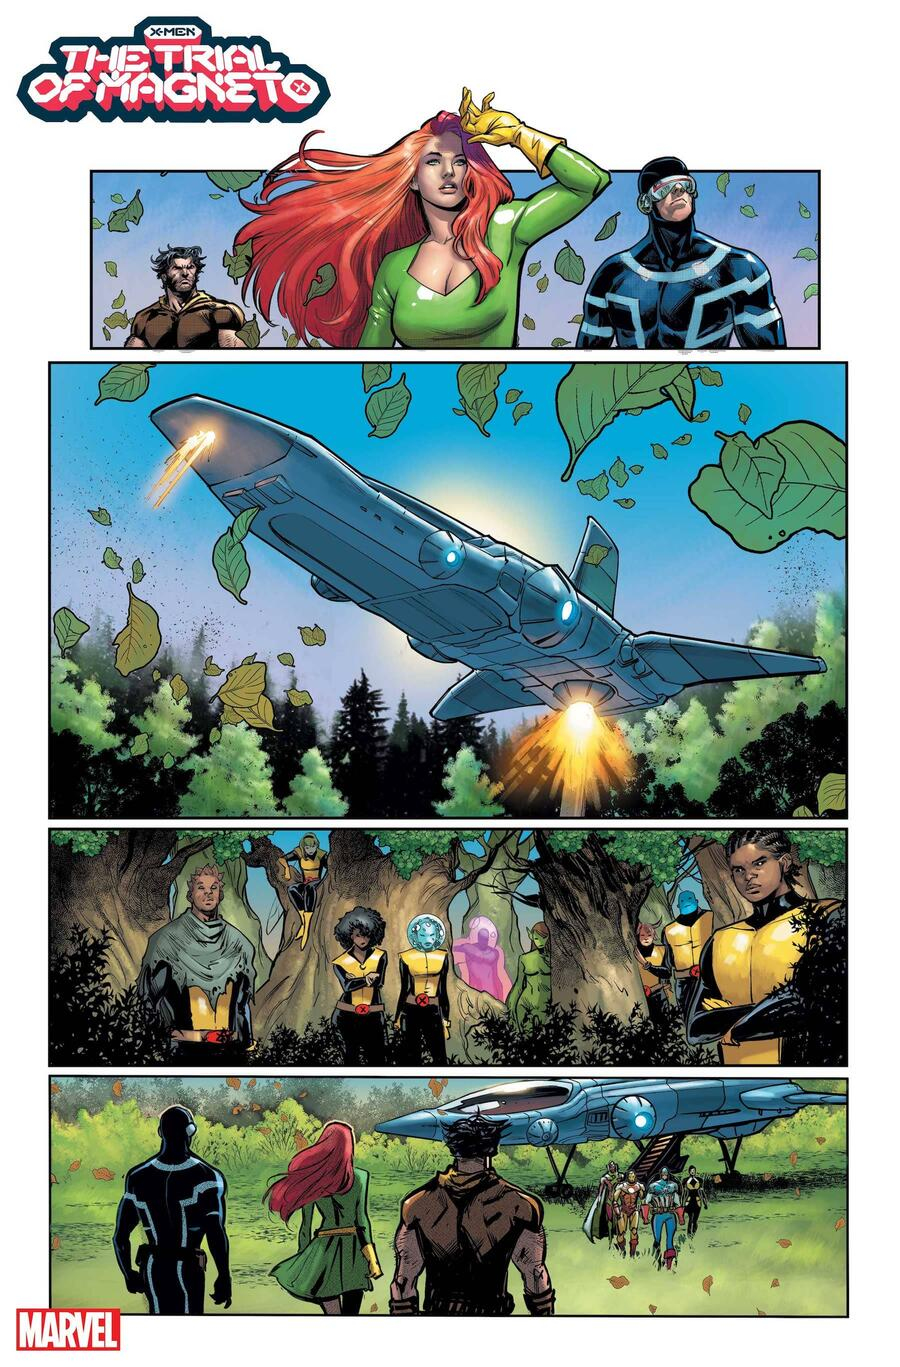 X-MEN: THE TRIAL OF MAGNETO #2 preview art by Lucas Werneck with colors by Edgar Delgado